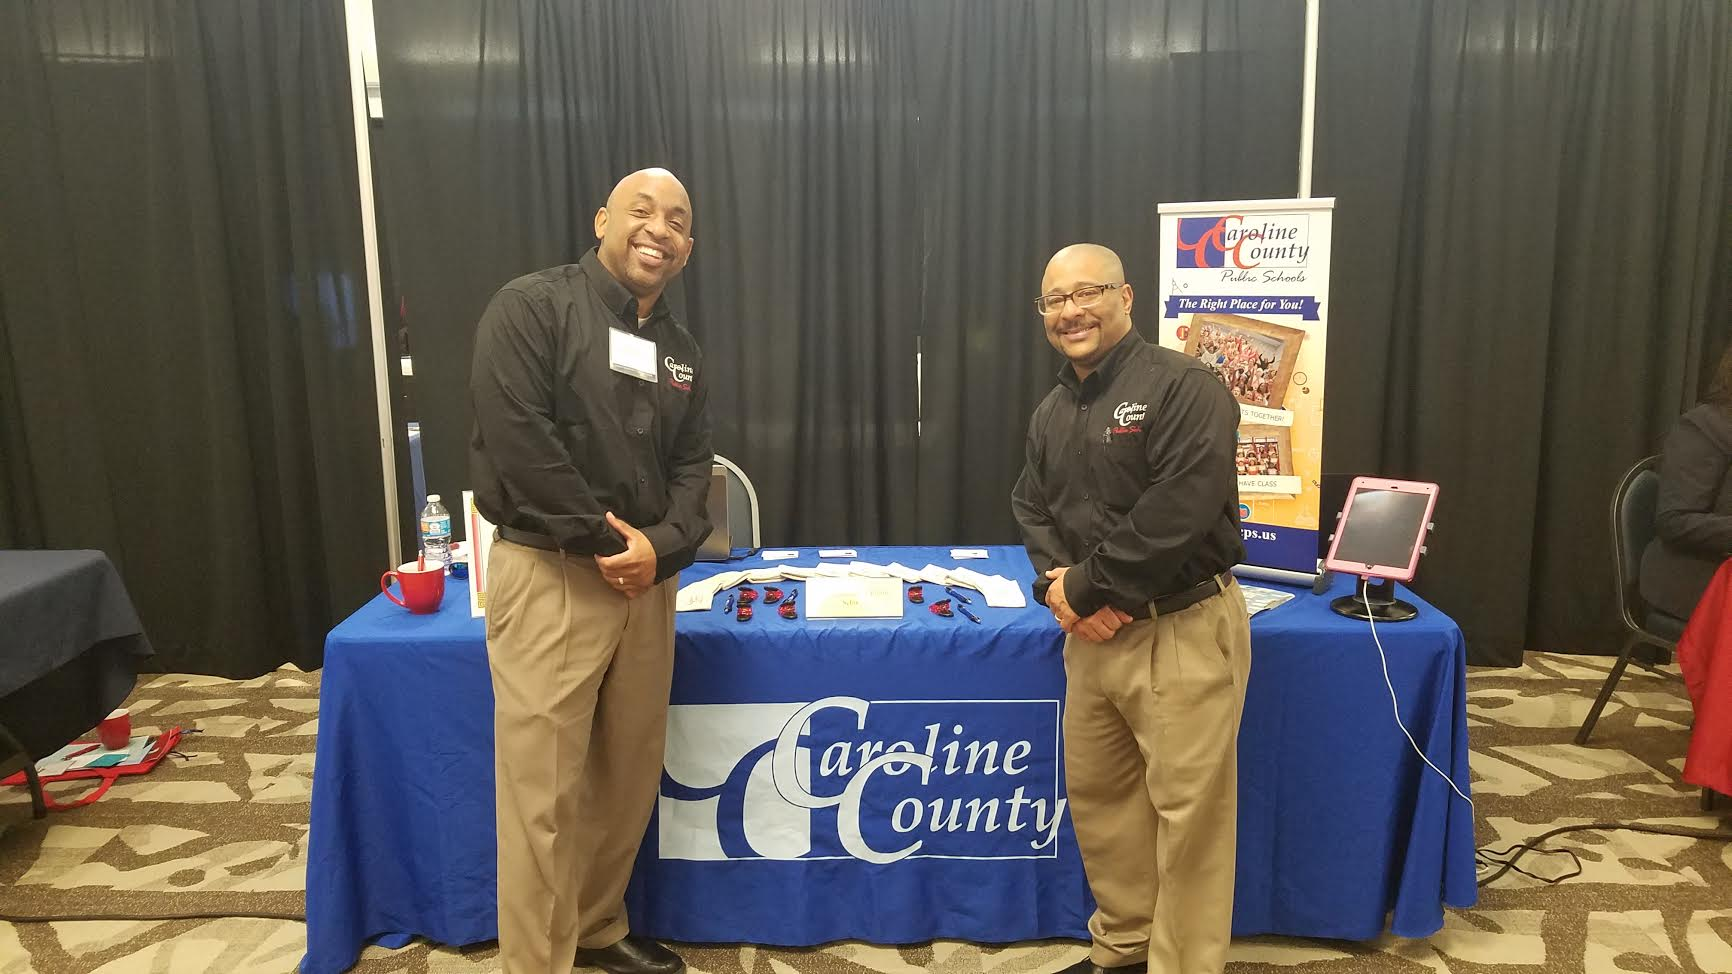 caroline county Find all the information you need to know in regards to boards and commissions, departments, the county mission statement and more.